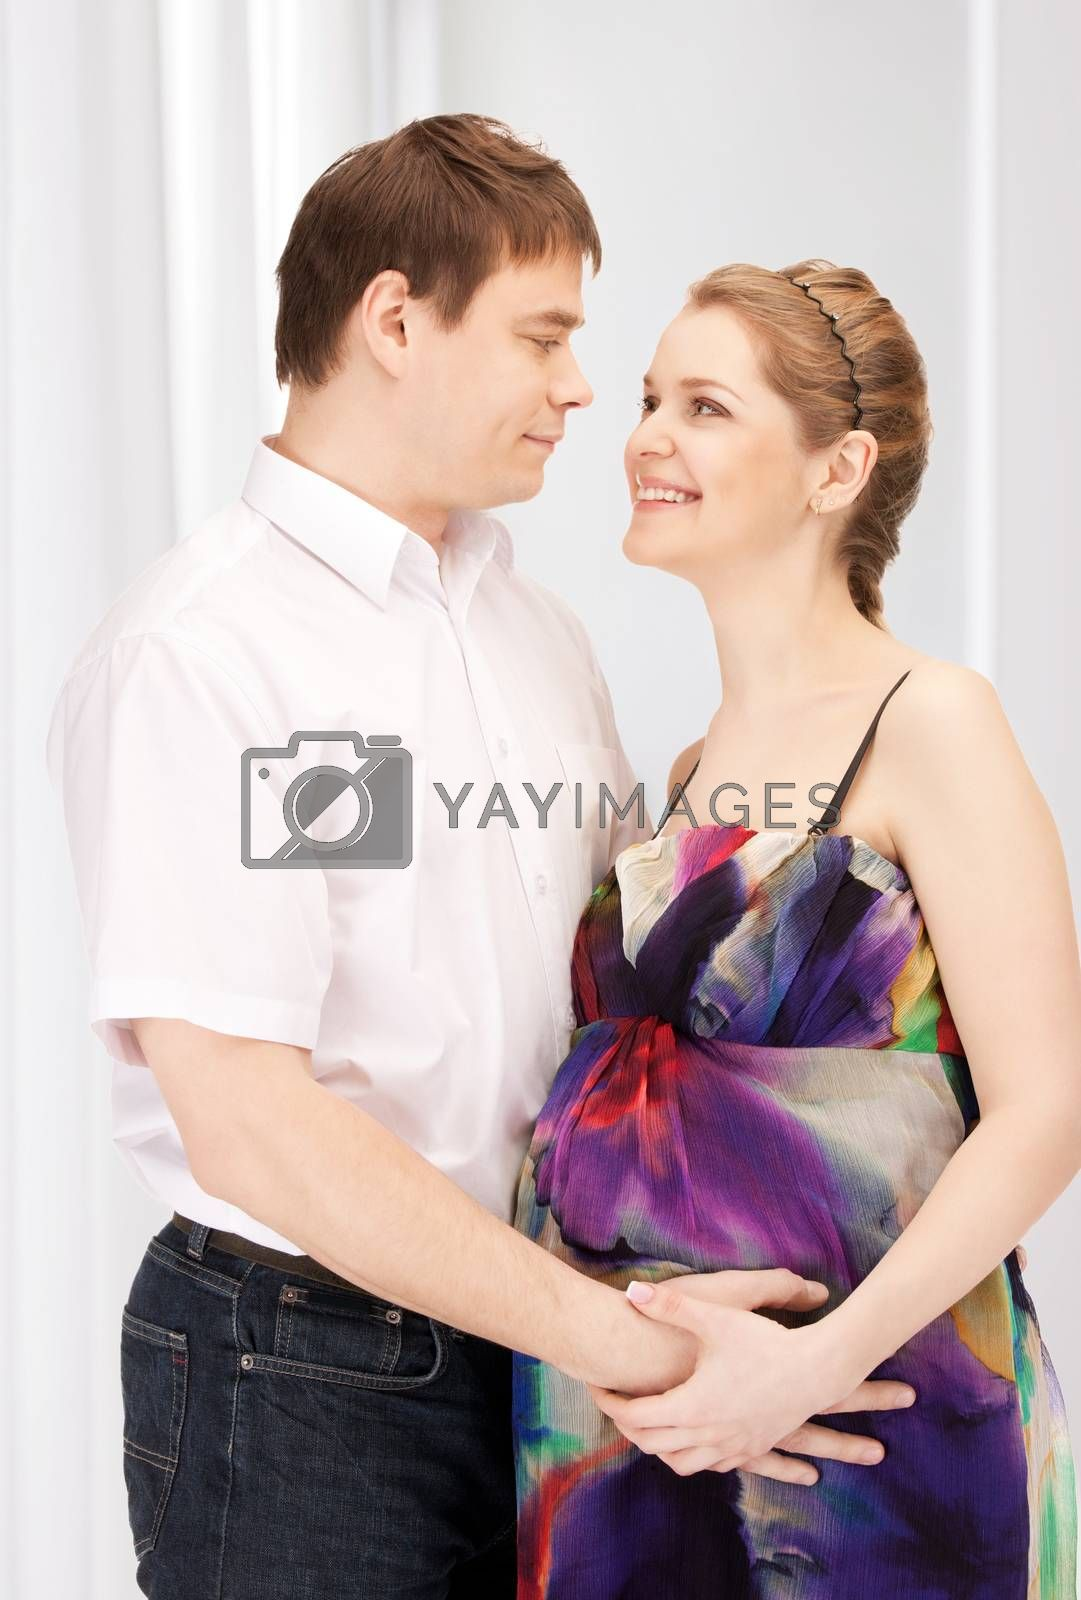 pregnant couple waiting for baby by dolgachov